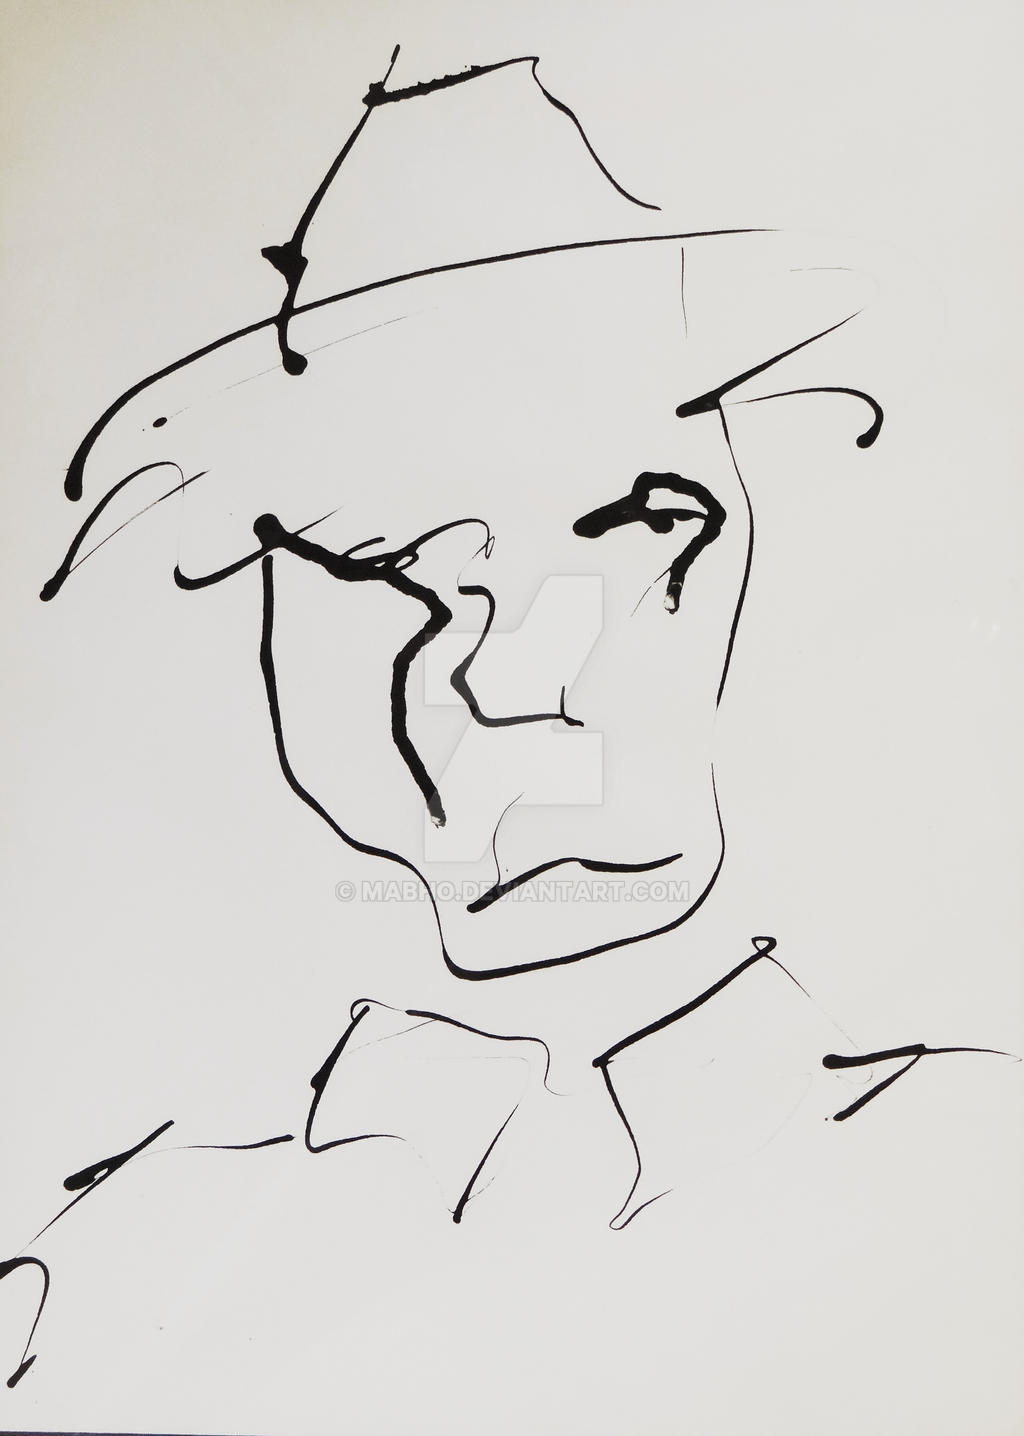 Man with a hat by mabho